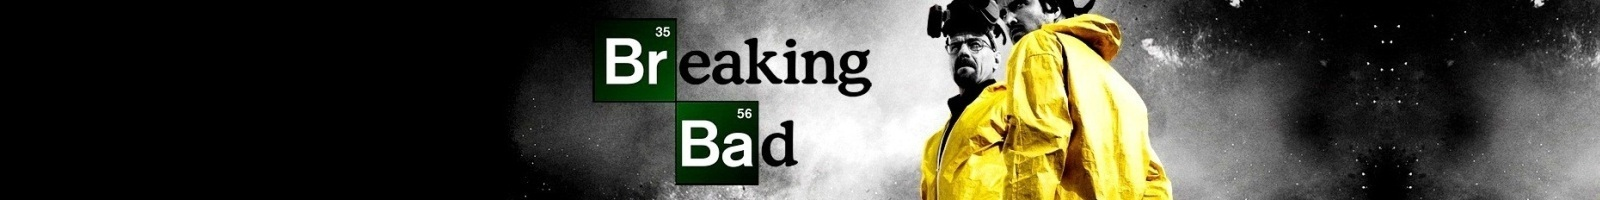 -Breaking-Bad-Banner-breaking-bad-22755573-1600-200.jpg